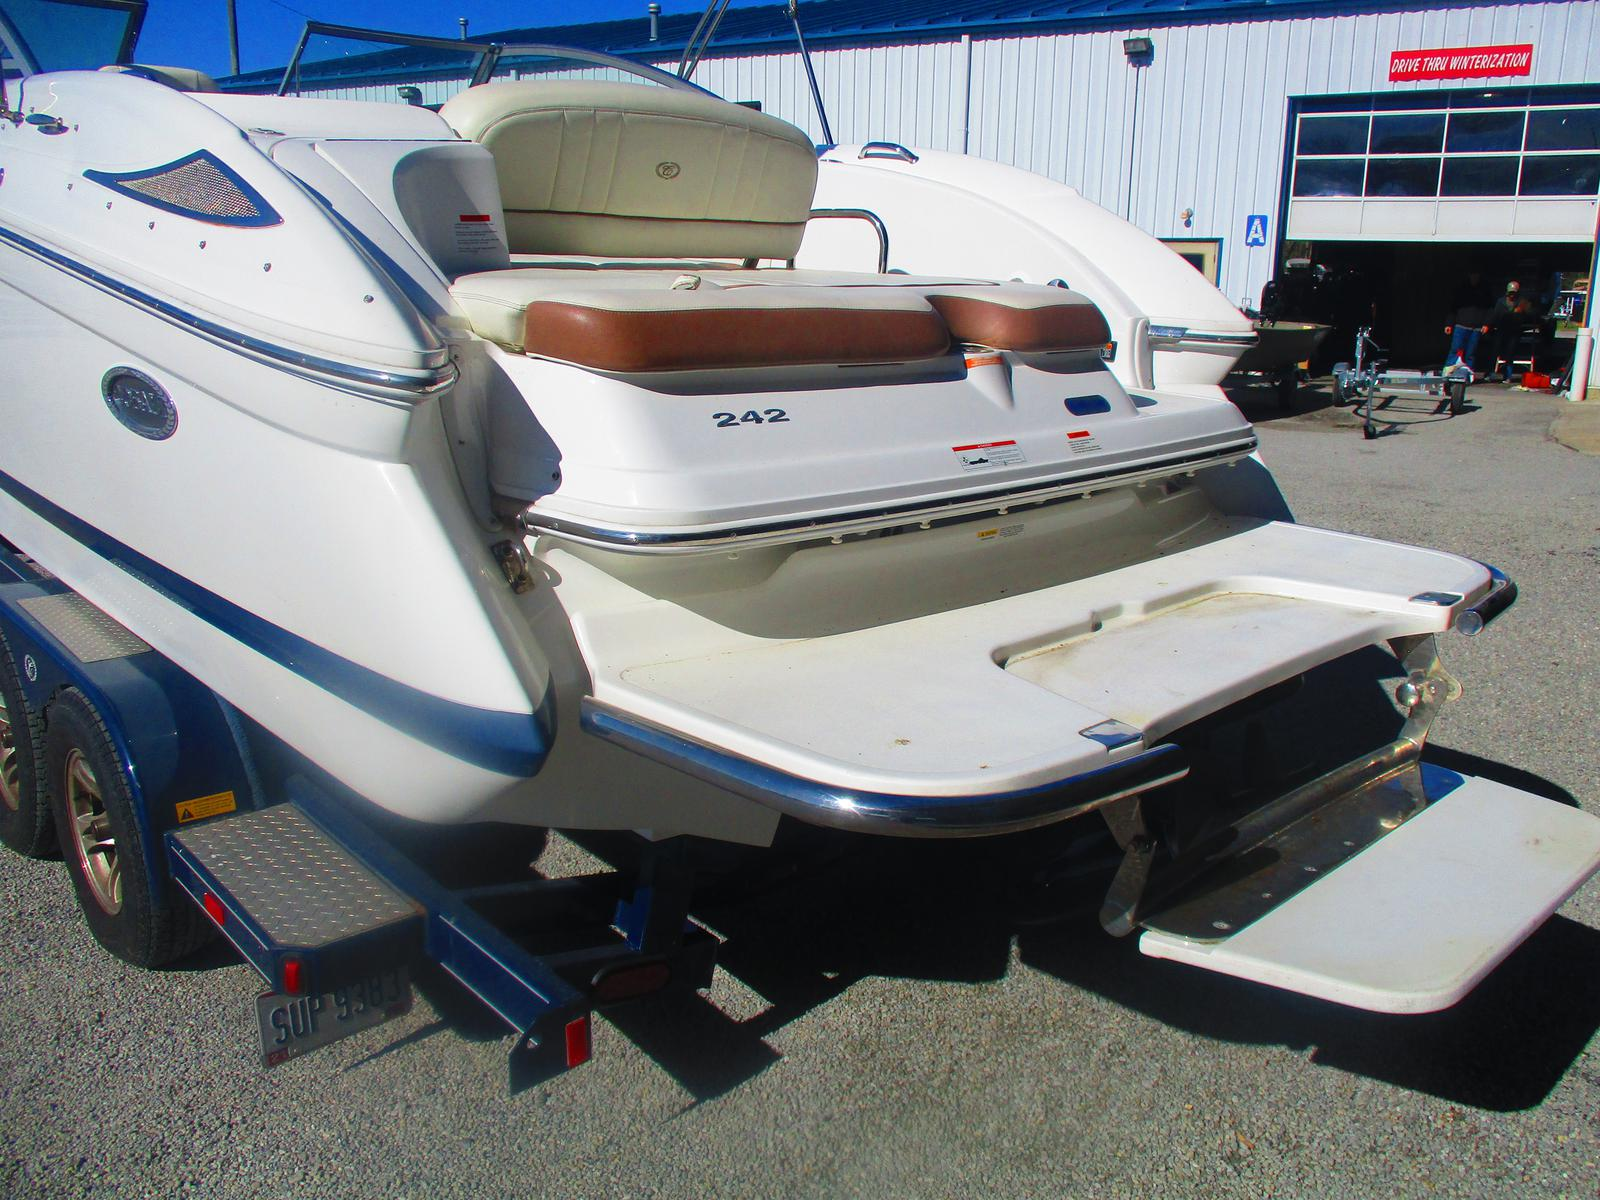 2012 Cobalt boat for sale, model of the boat is 242 & Image # 7 of 8